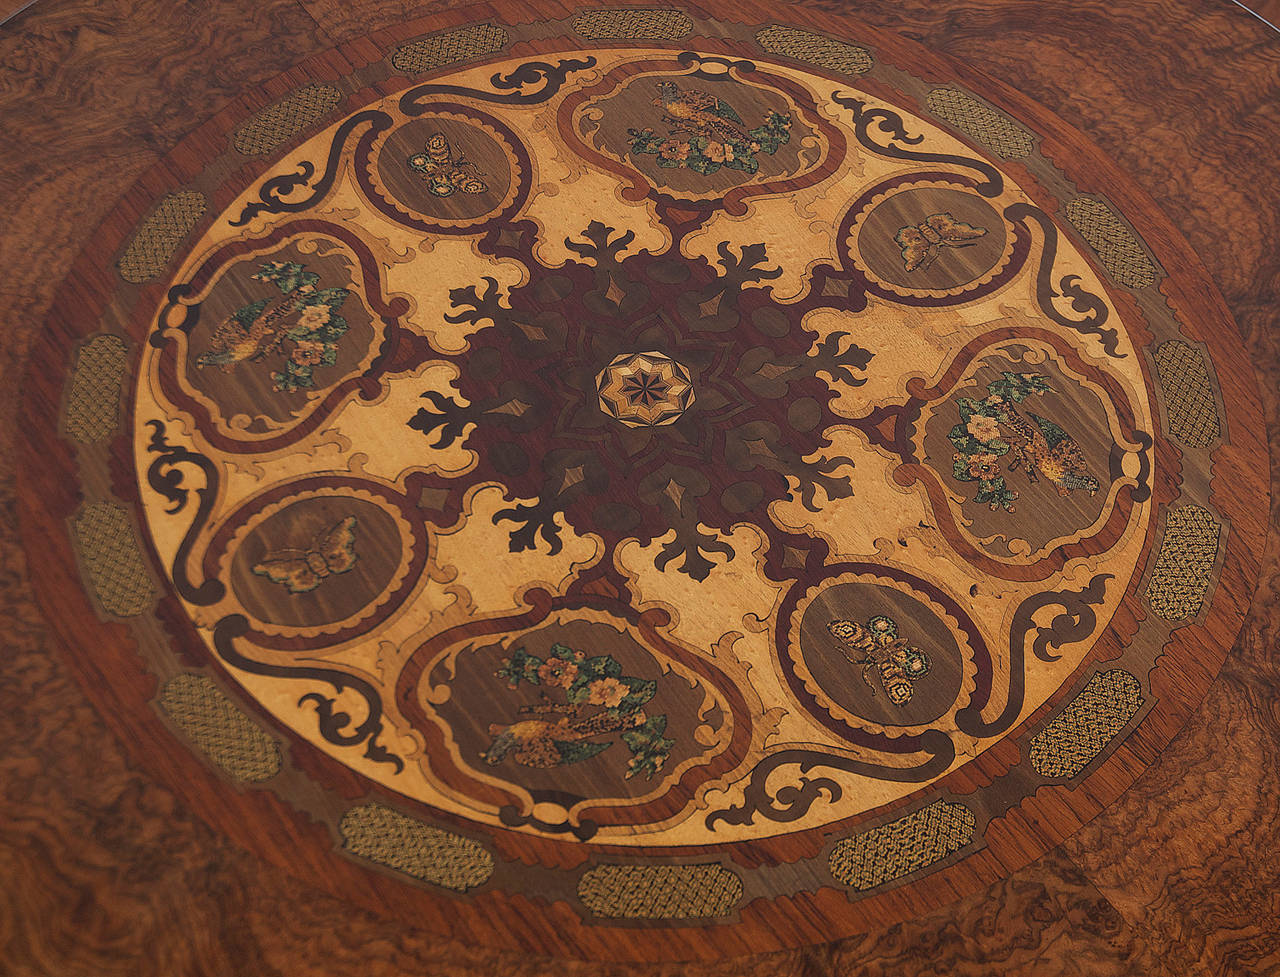 19th Century Italian Center Table with Mosaic Marquetry on Round Top 4